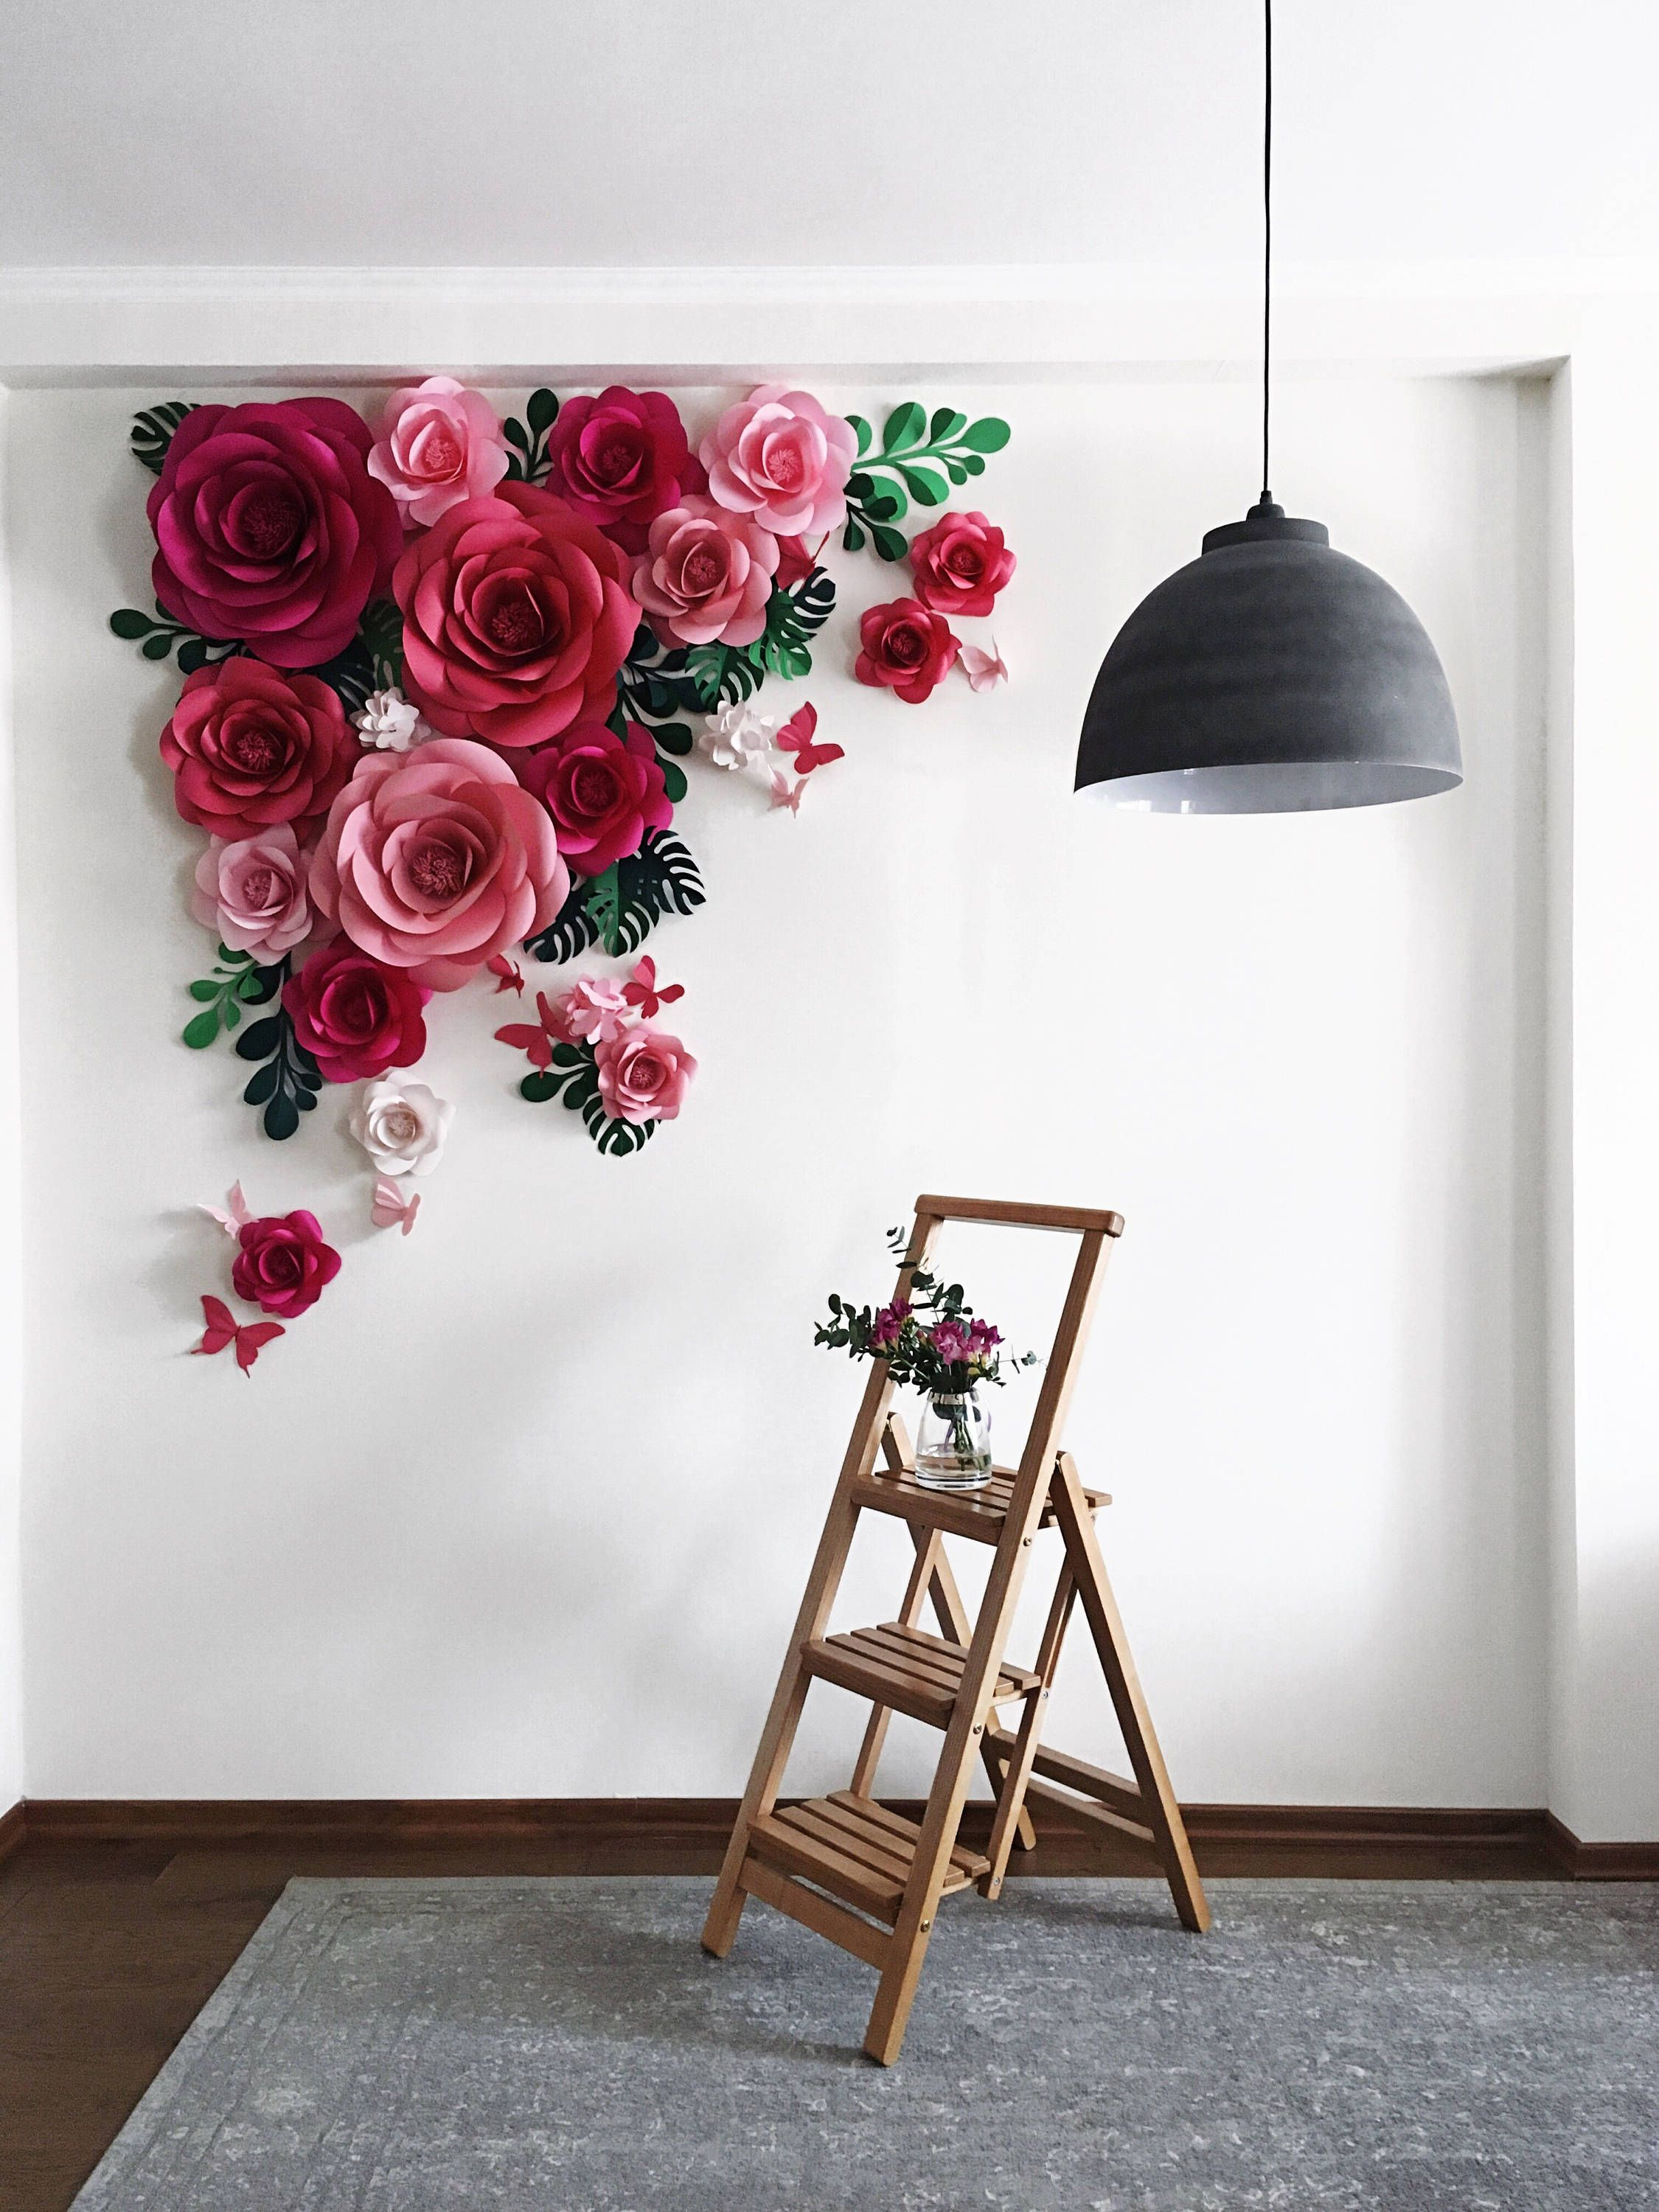 felt wood with flowers sign embellished and decor metal il flower home p fullxfull rose wall